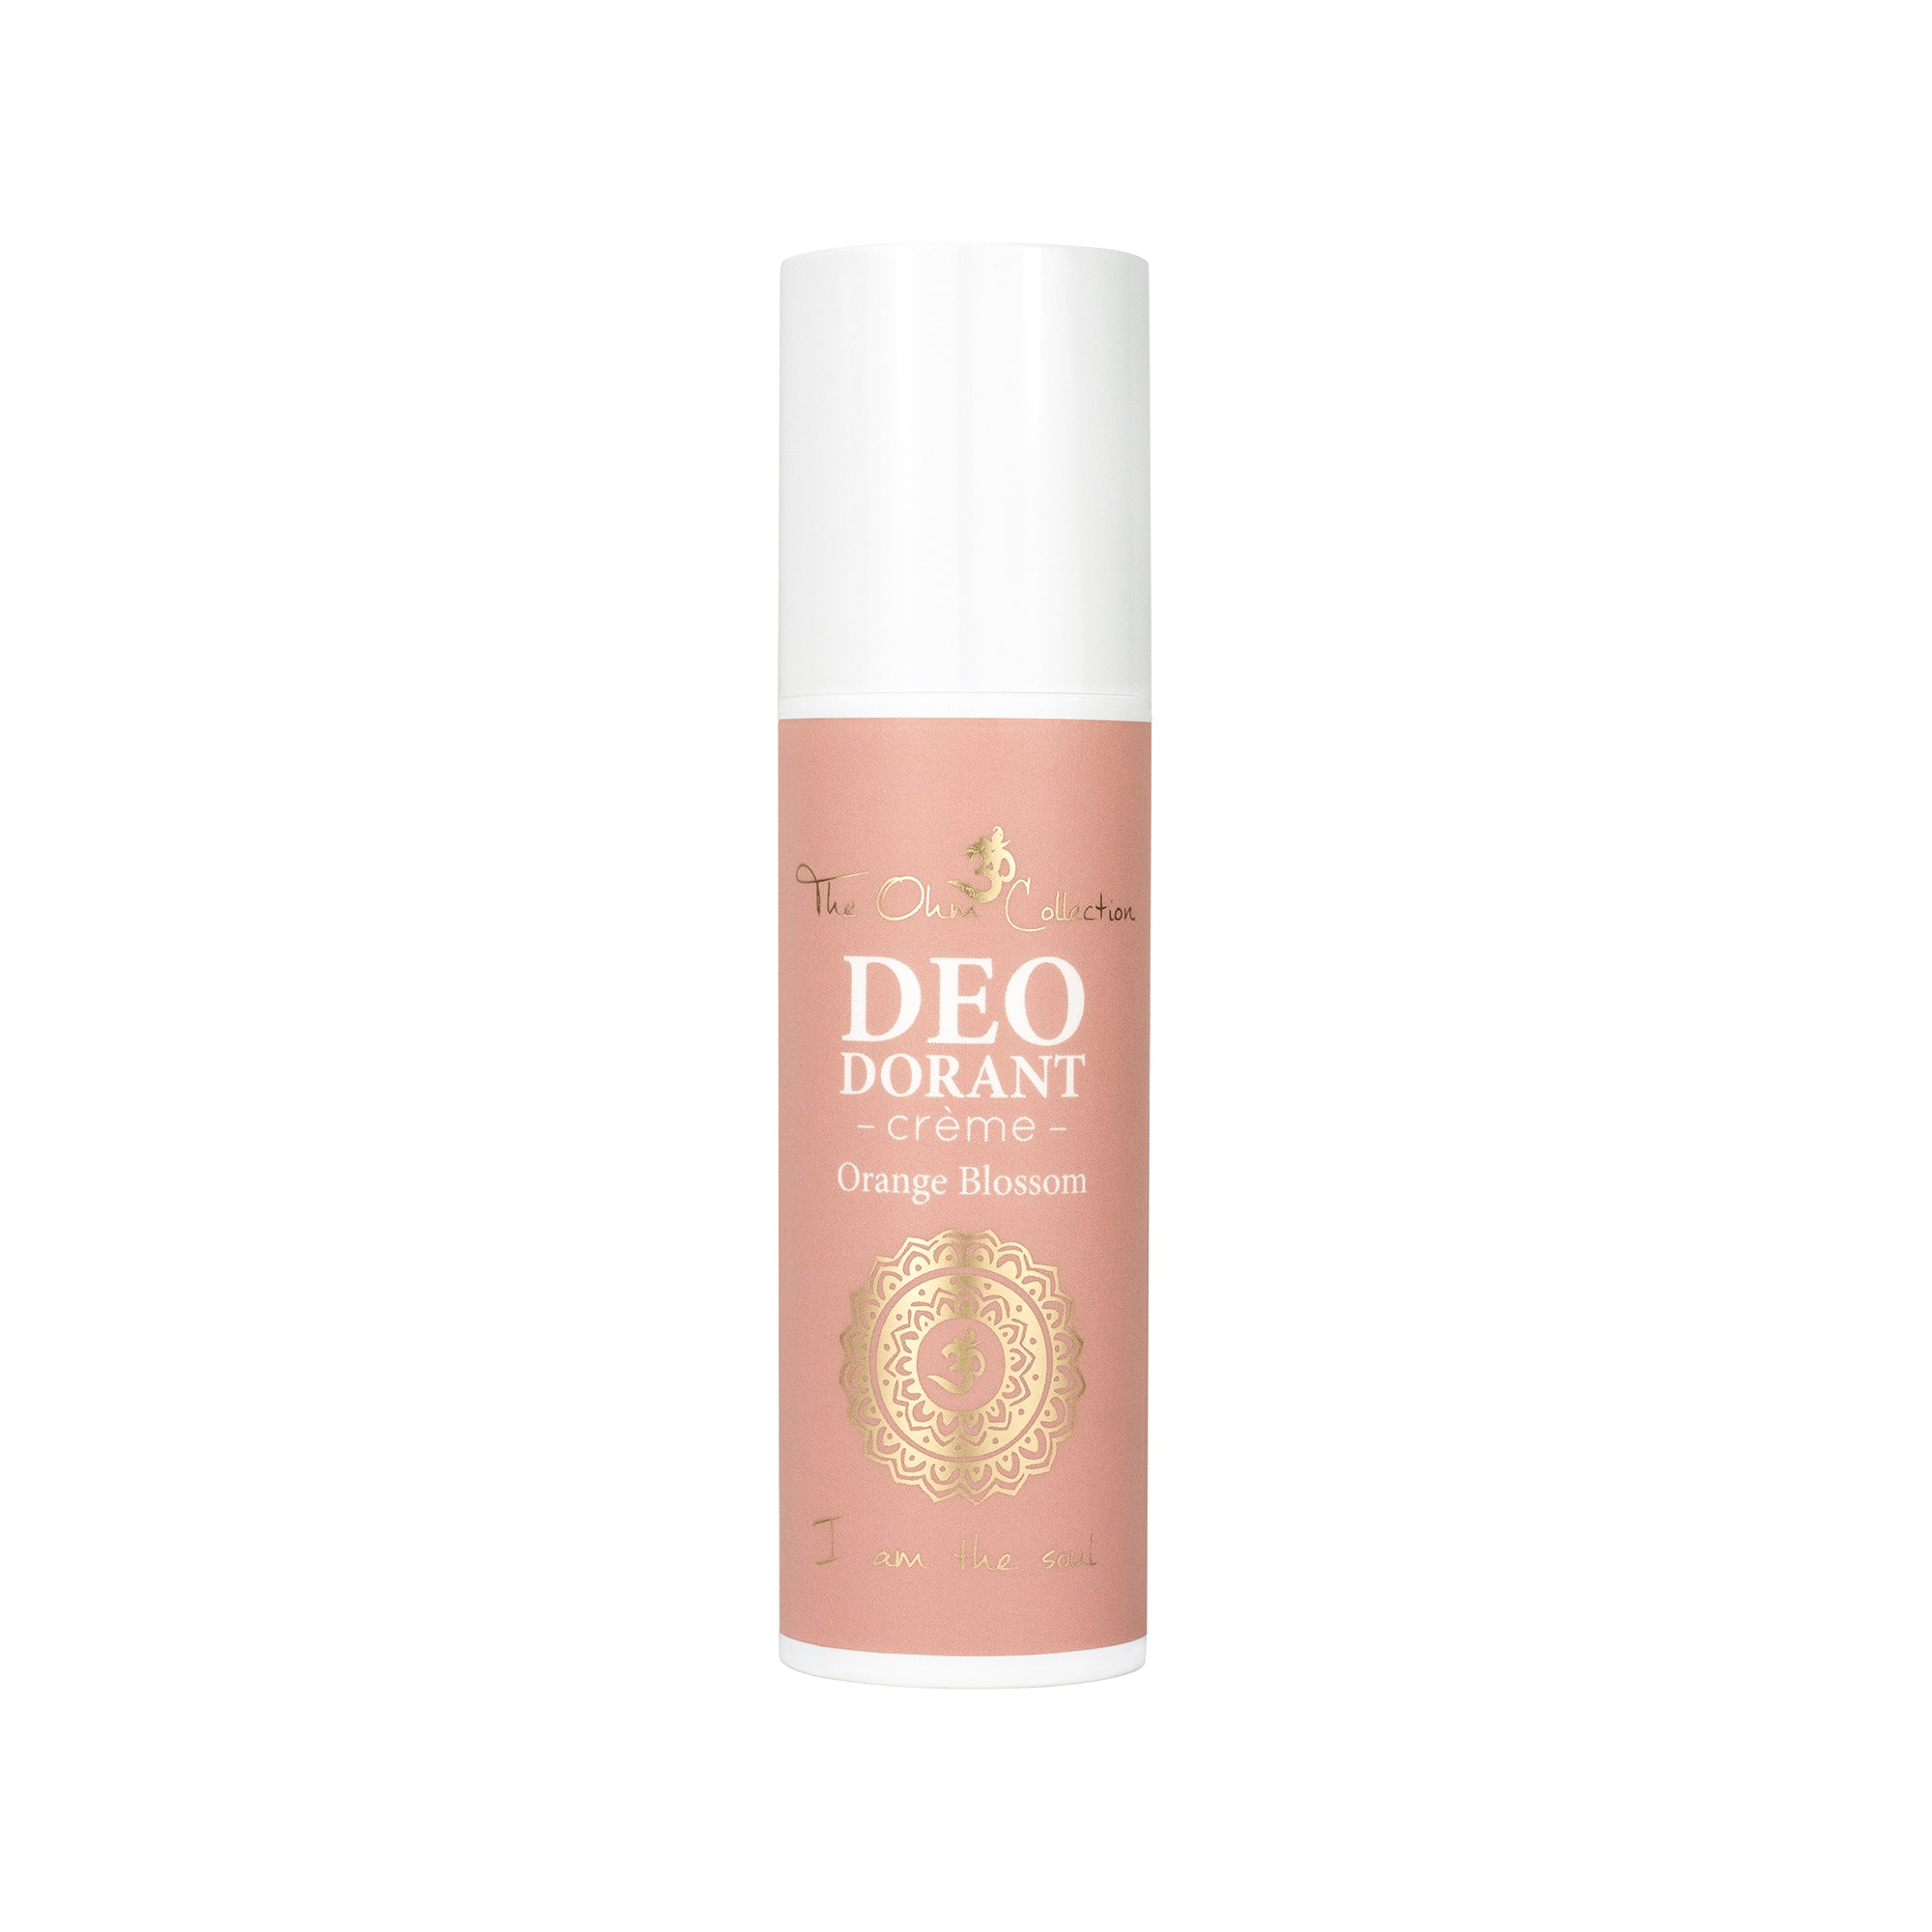 Deodorant Cream Orange Blossom